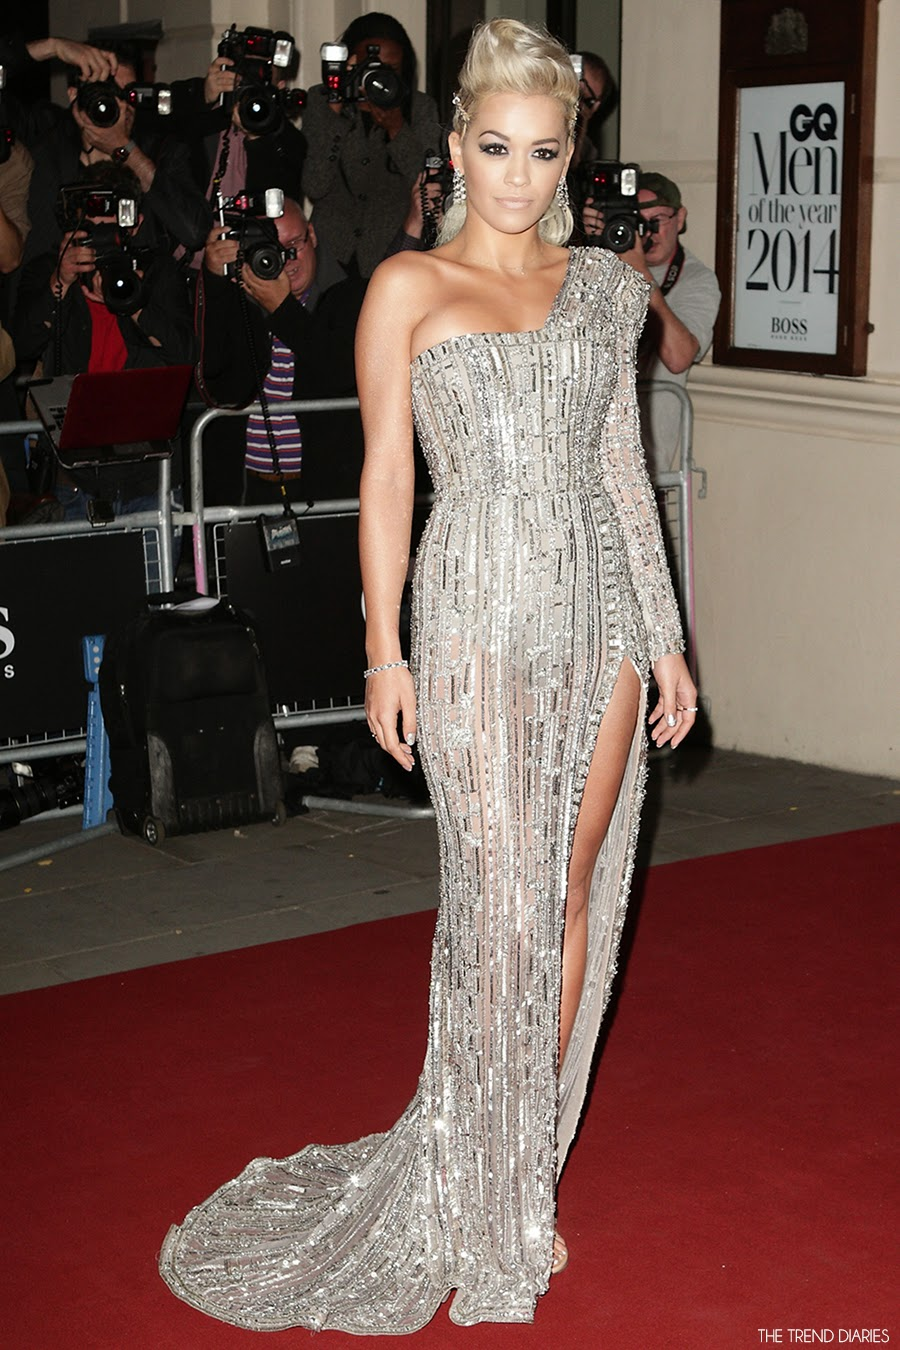 rita-ora-red-carpet-2014-gq-men-of-the-year-awards-in-zuhair-murad-couture-fall-2014-sequin-one-shoulder-thigh-slit-gown-celebrity-style-fashion.jpg